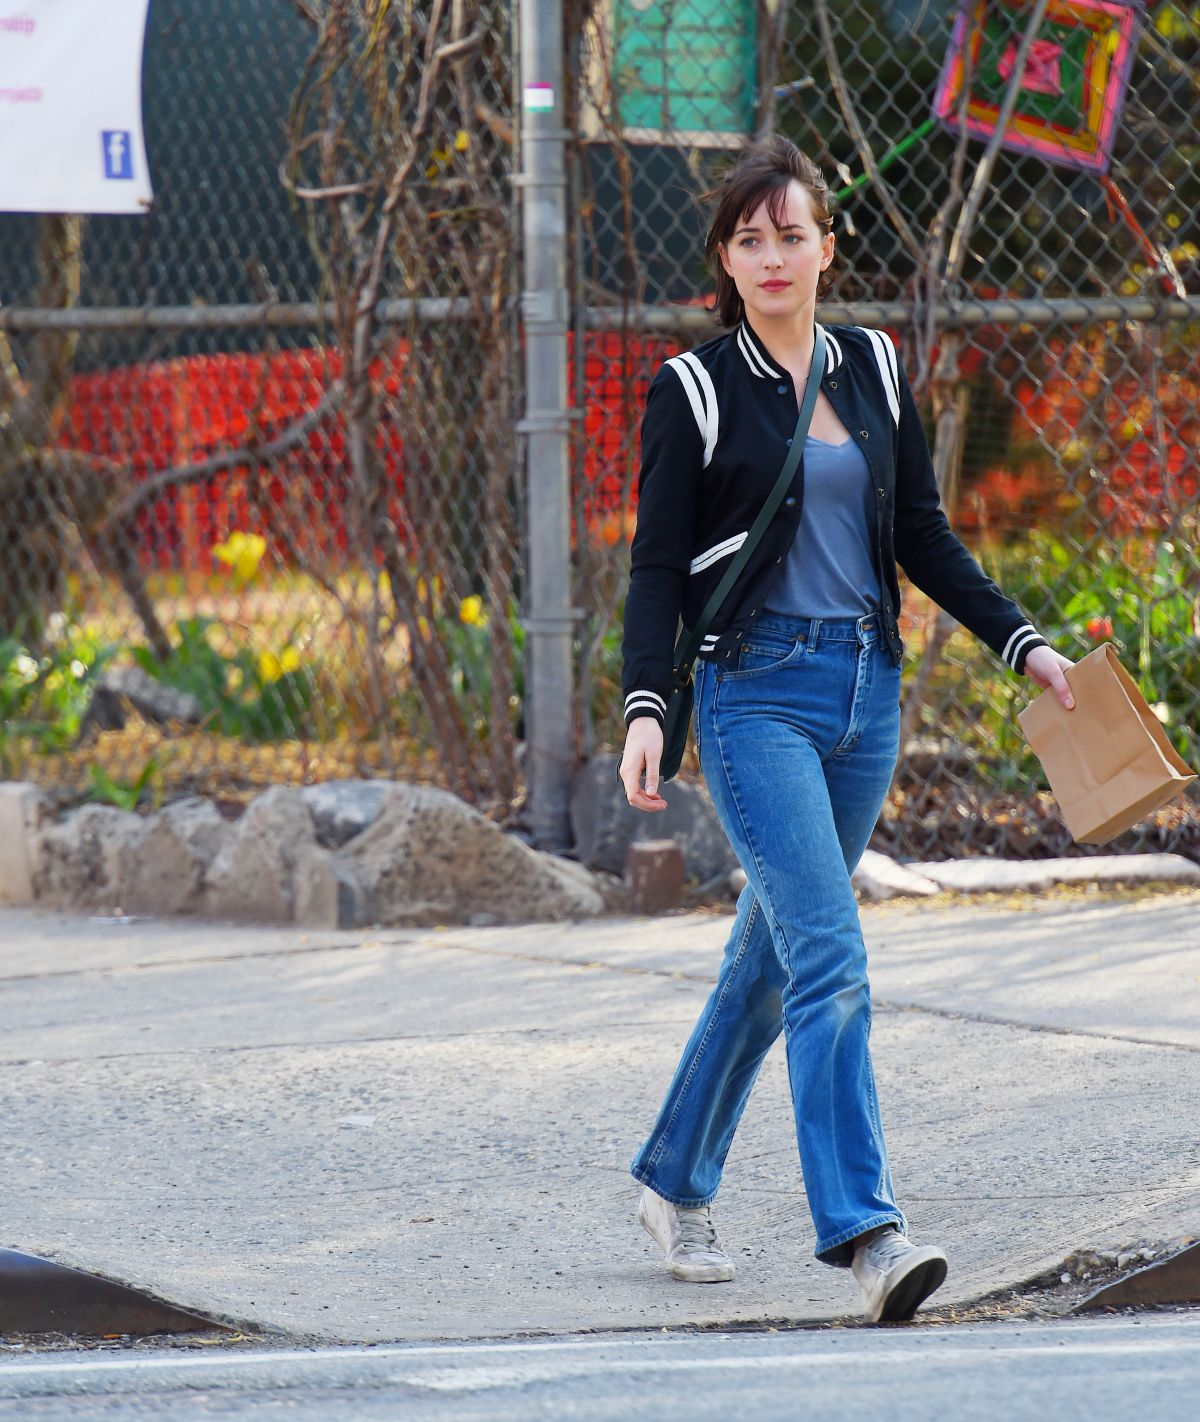 Dakota johnson on the set of how to be single in new york 04 21 full ccuart Images